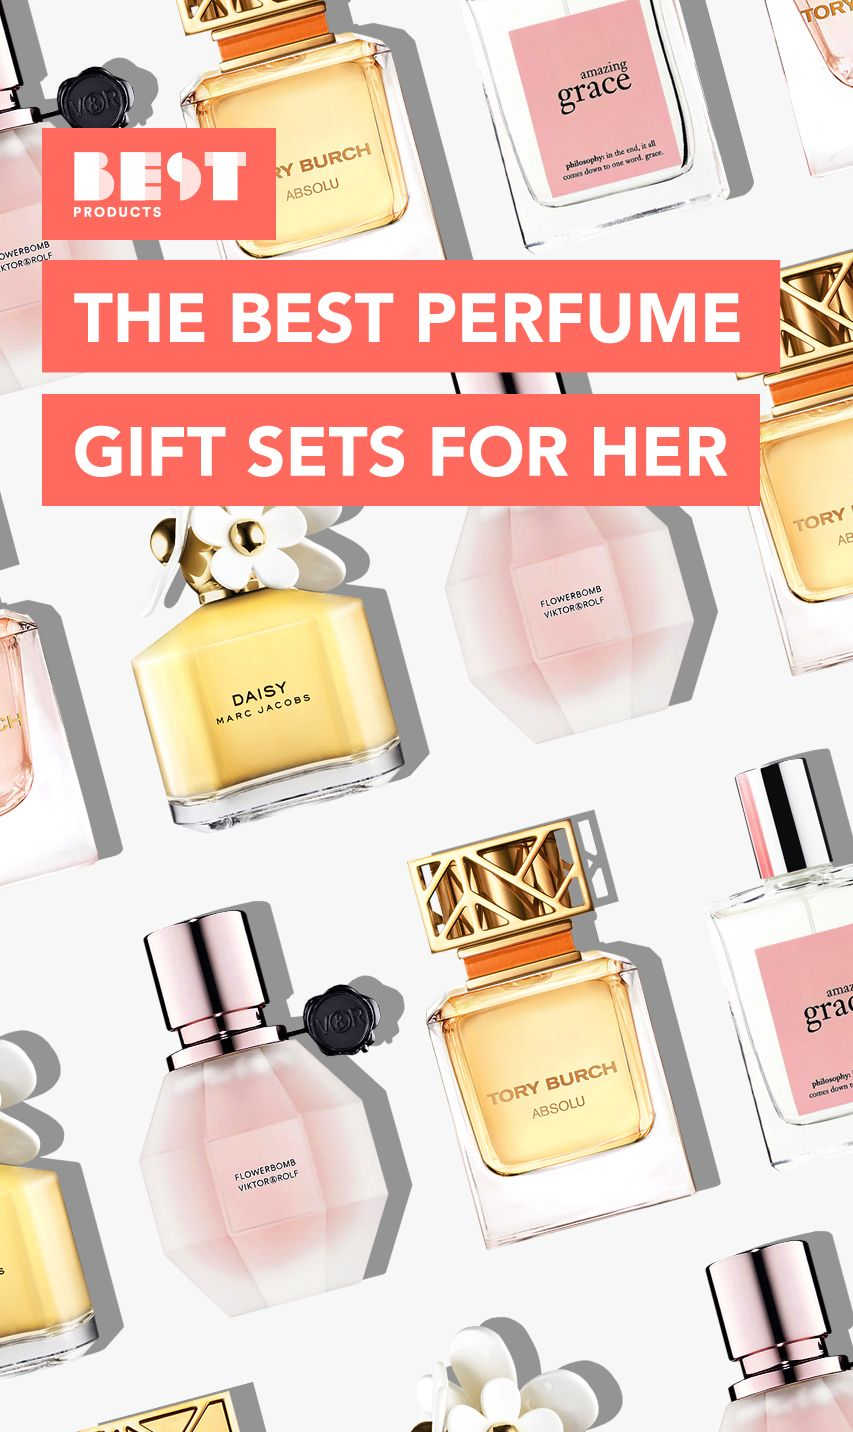 10 Best Perfume Gift Sets to Give in 2018 - Fragrance Gift Sets for Her